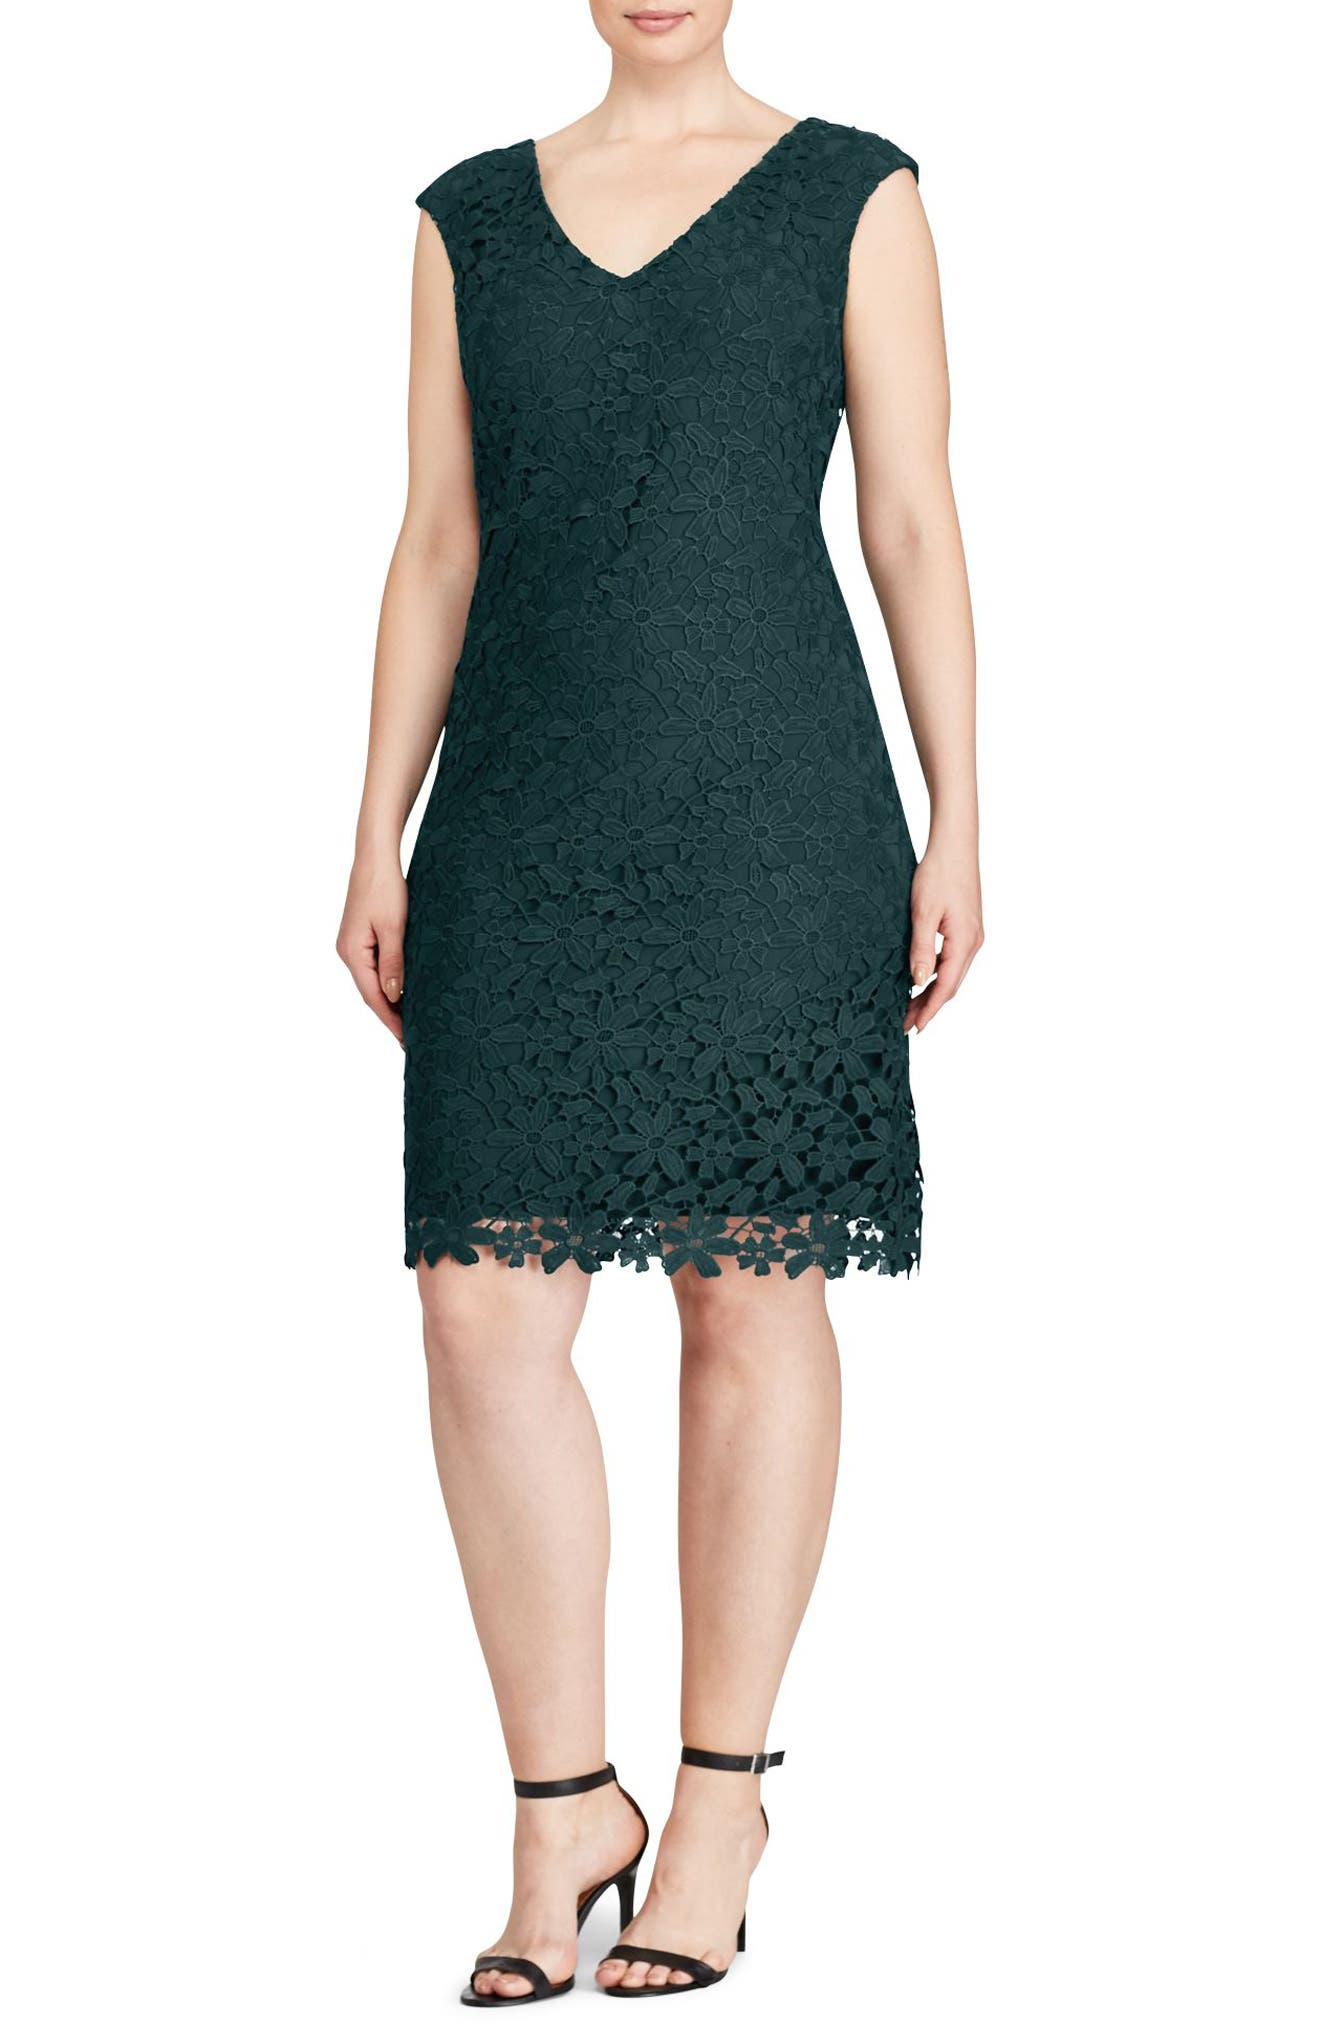 Lauren Ralph Lauren Montie Floral Lace Sheath Dress (Plus Size)